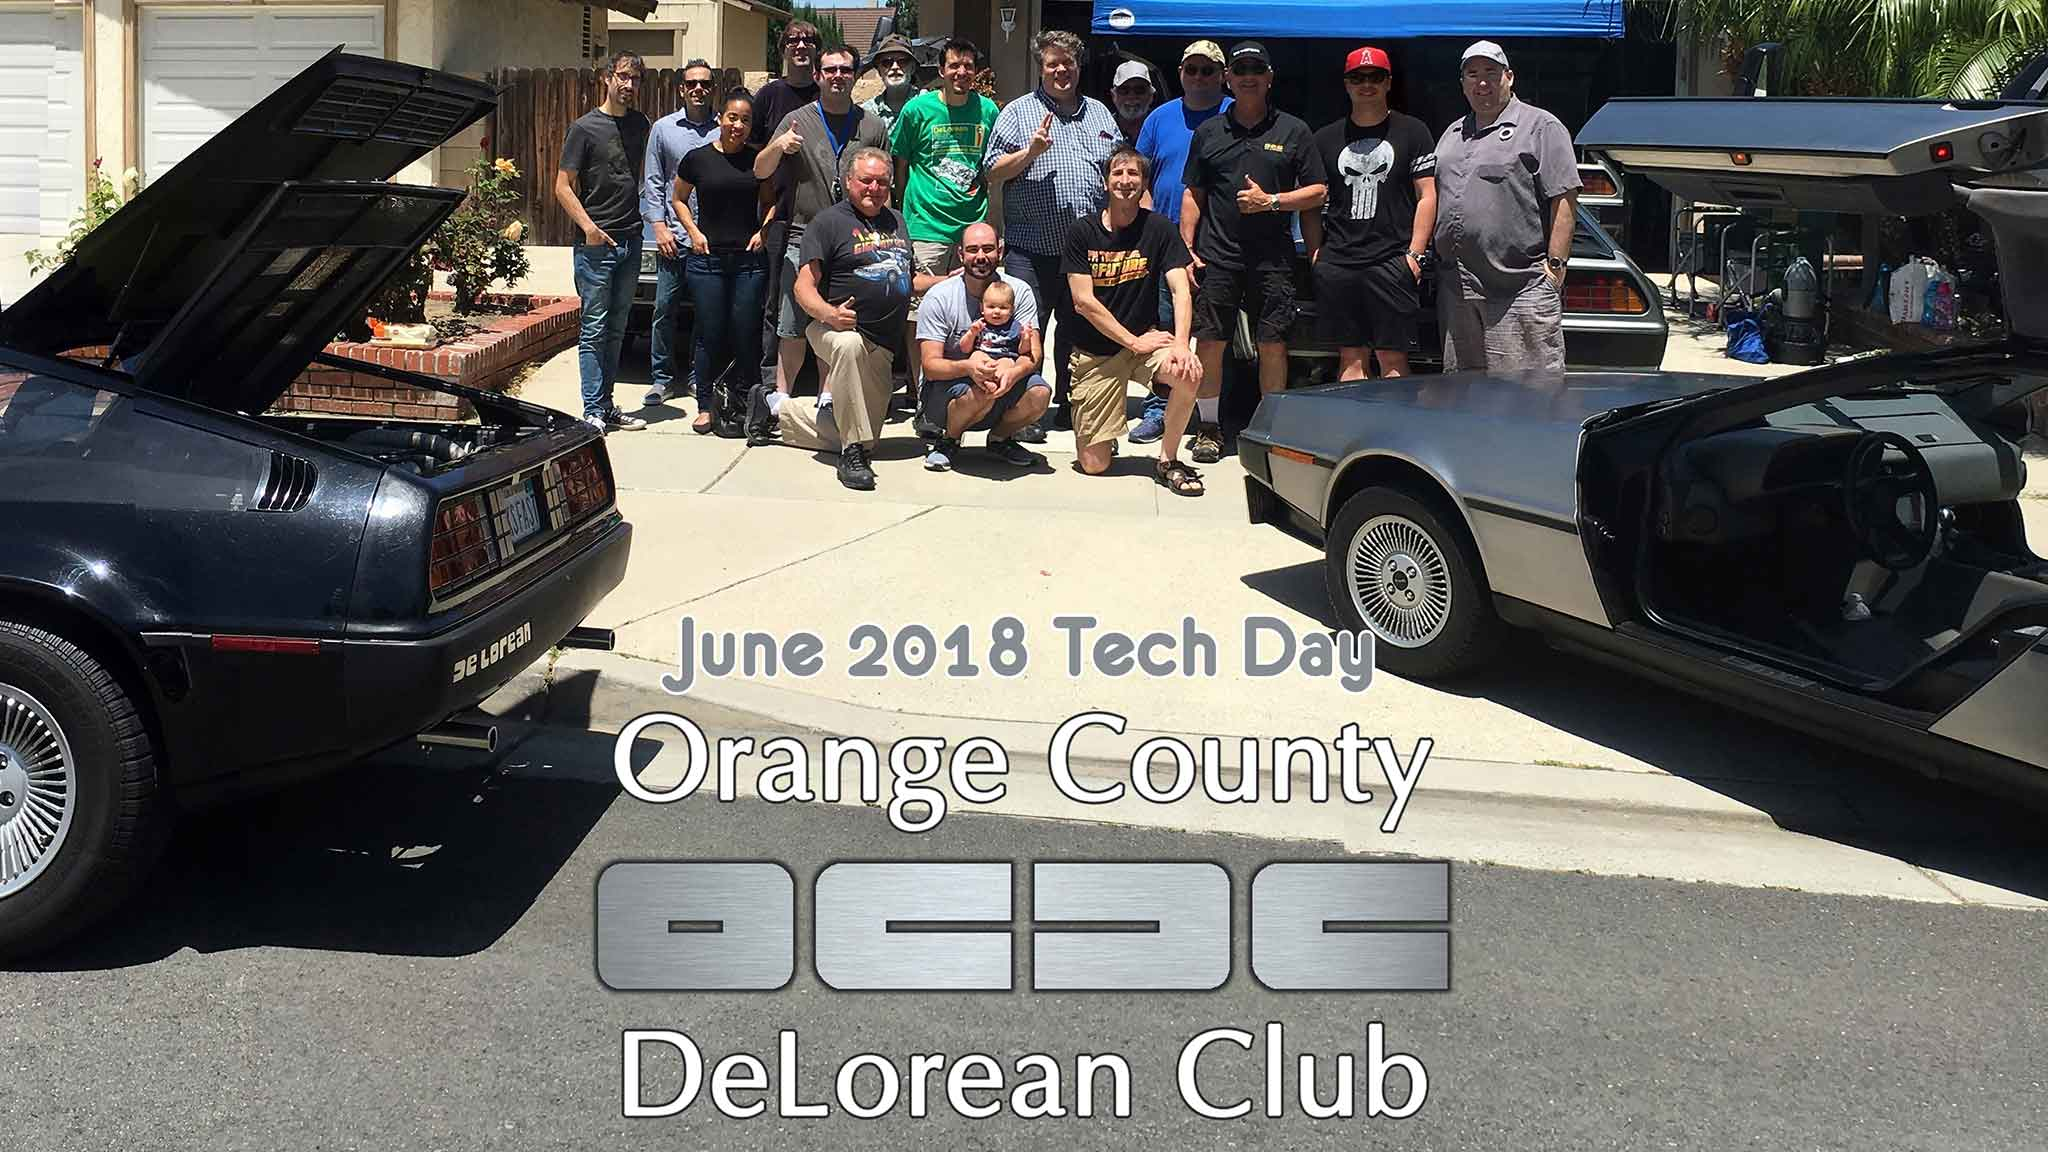 OCDC June 2018 Tech Day | Orange County DeLorean Club